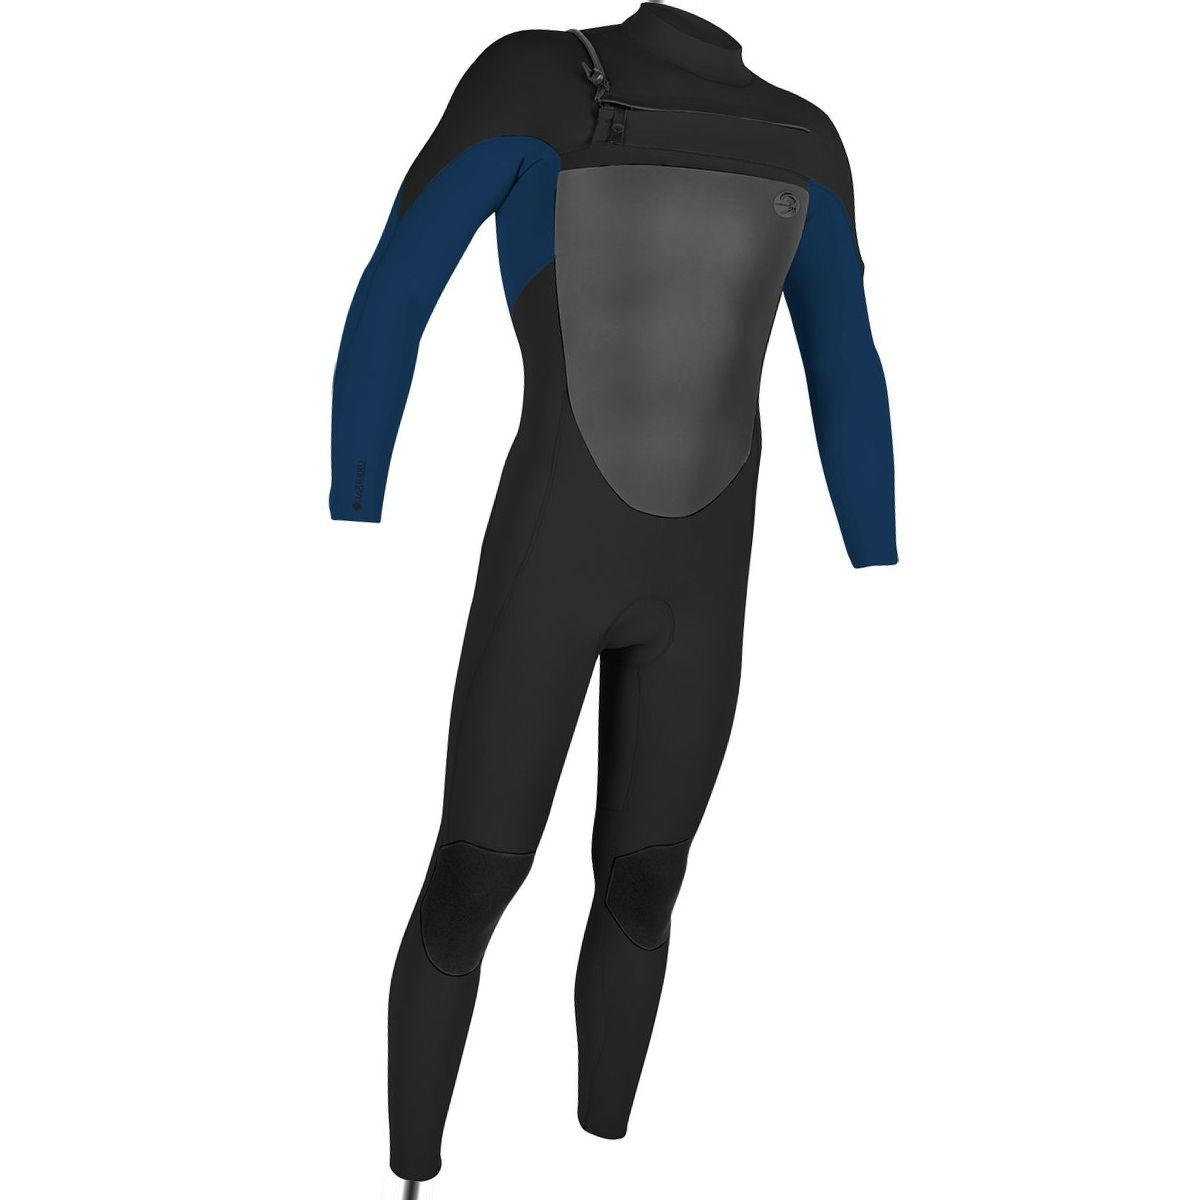 O'Neill O'riginal F.U.Z.E. 3/2 Taped Wetsuit - Men's